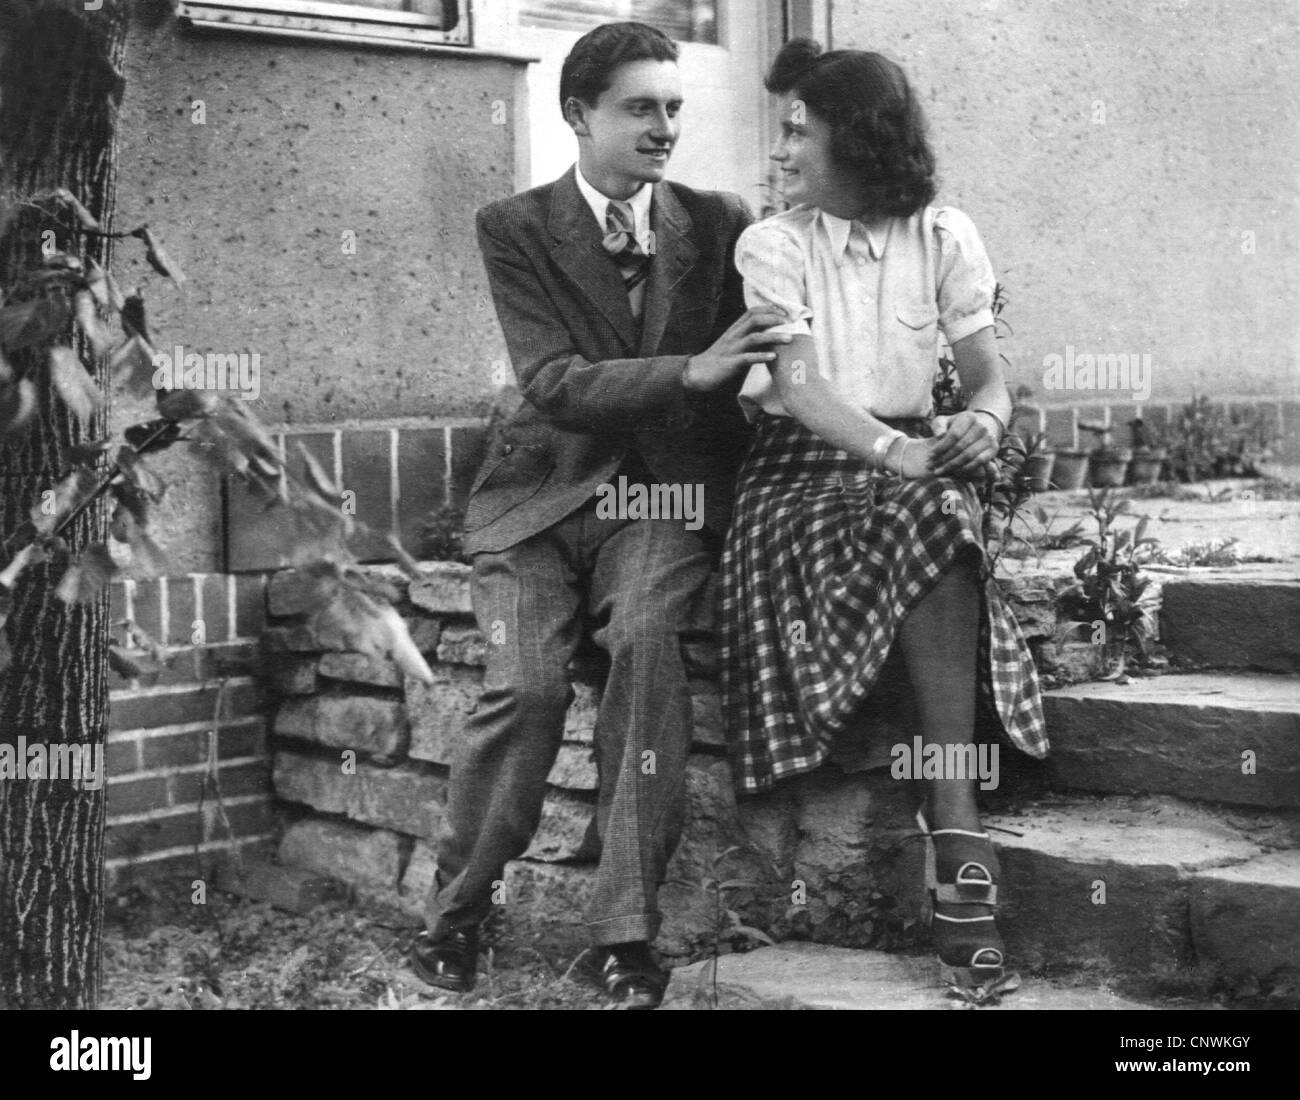 people, couple, young couple on steps, 1930s, Additional-Rights-Clearences-NA - Stock Image